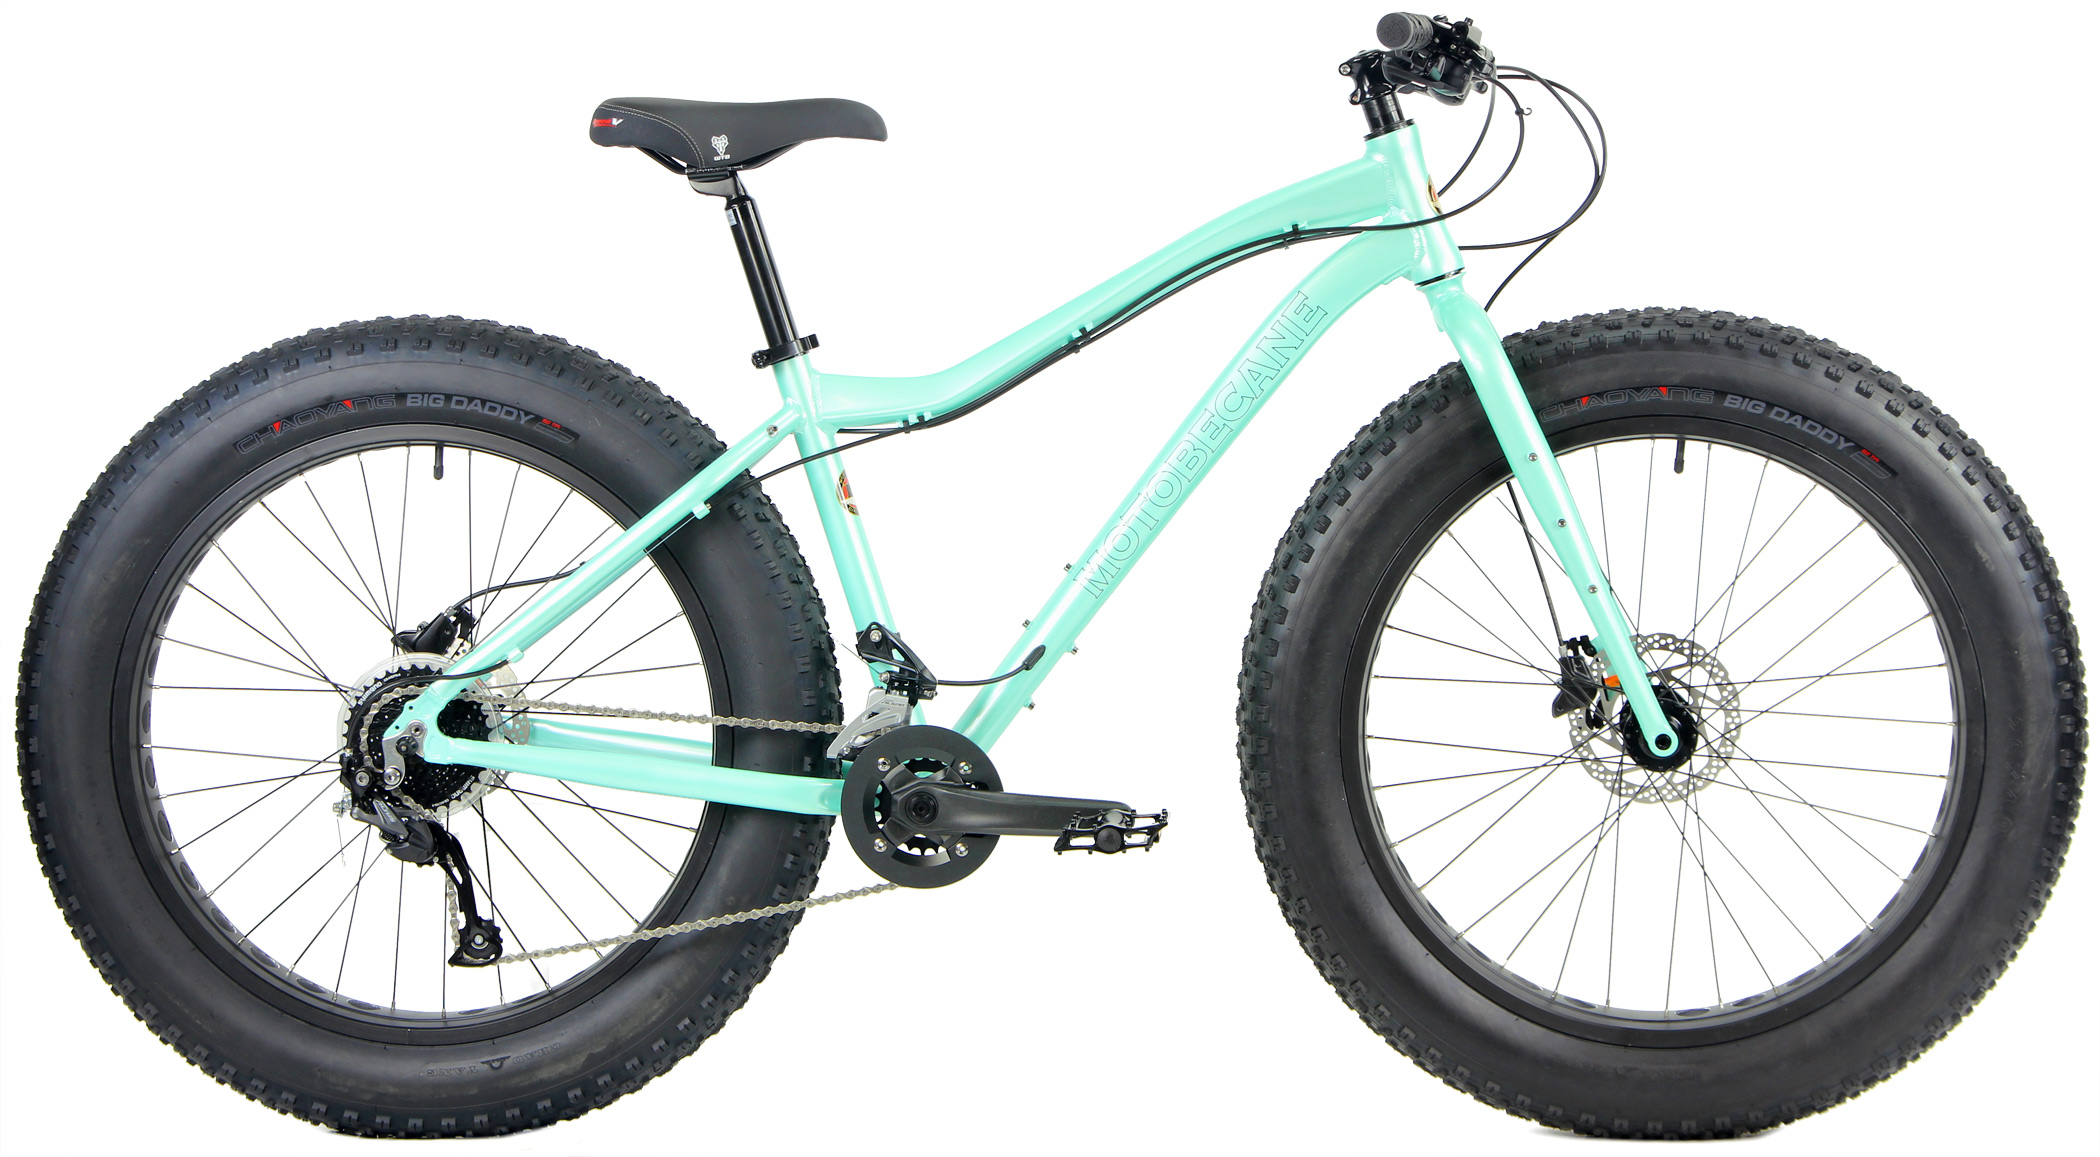 Bikes Motobecane Boris LTD Shimano Alivio/ALTUS 2X9 Spd HYDRAULIC Disc Brake Fat Bike Image